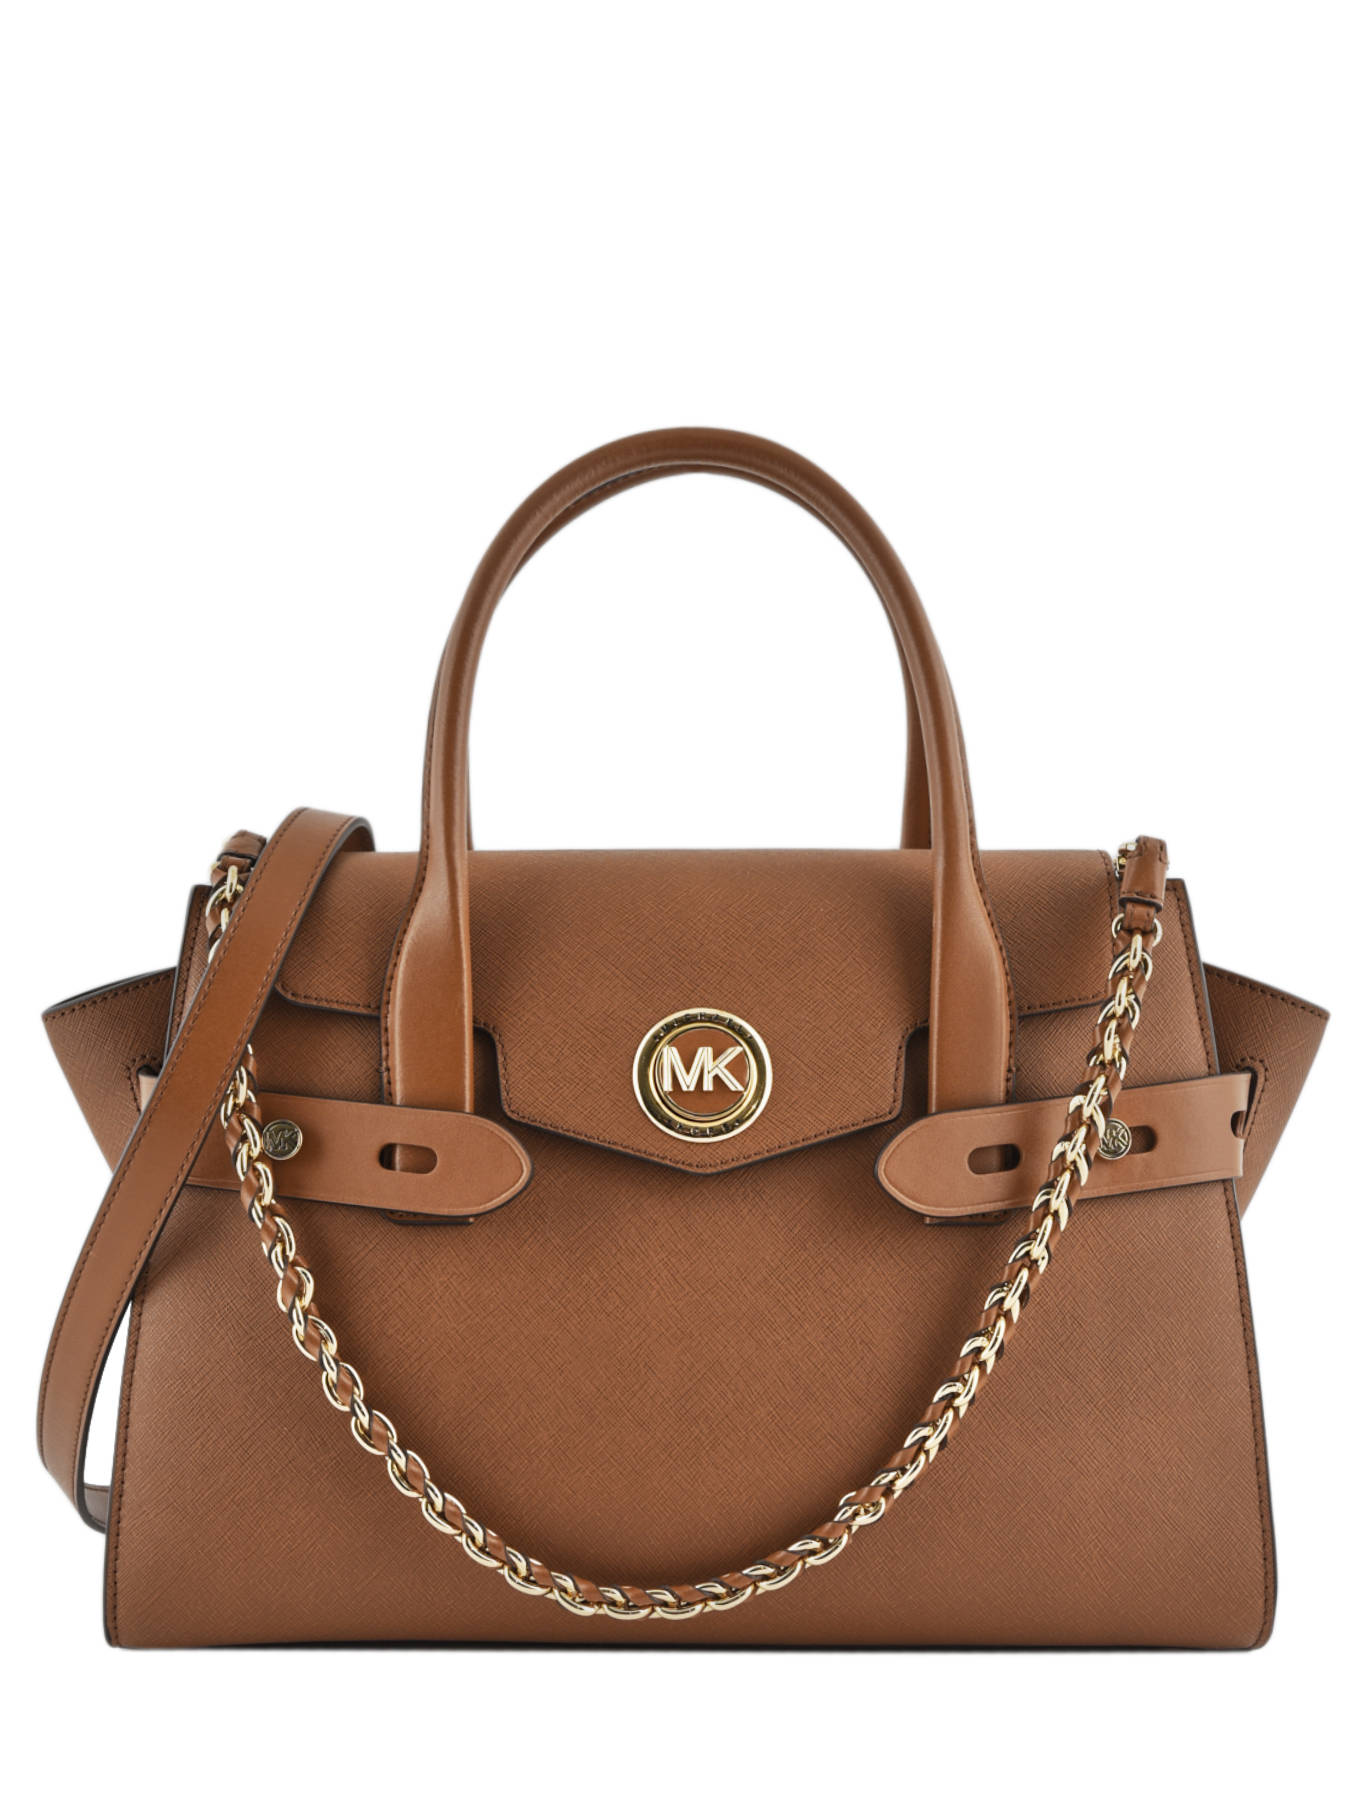 vente sac michael kors OFF 52% - Online Shopping Site for Fashion ...